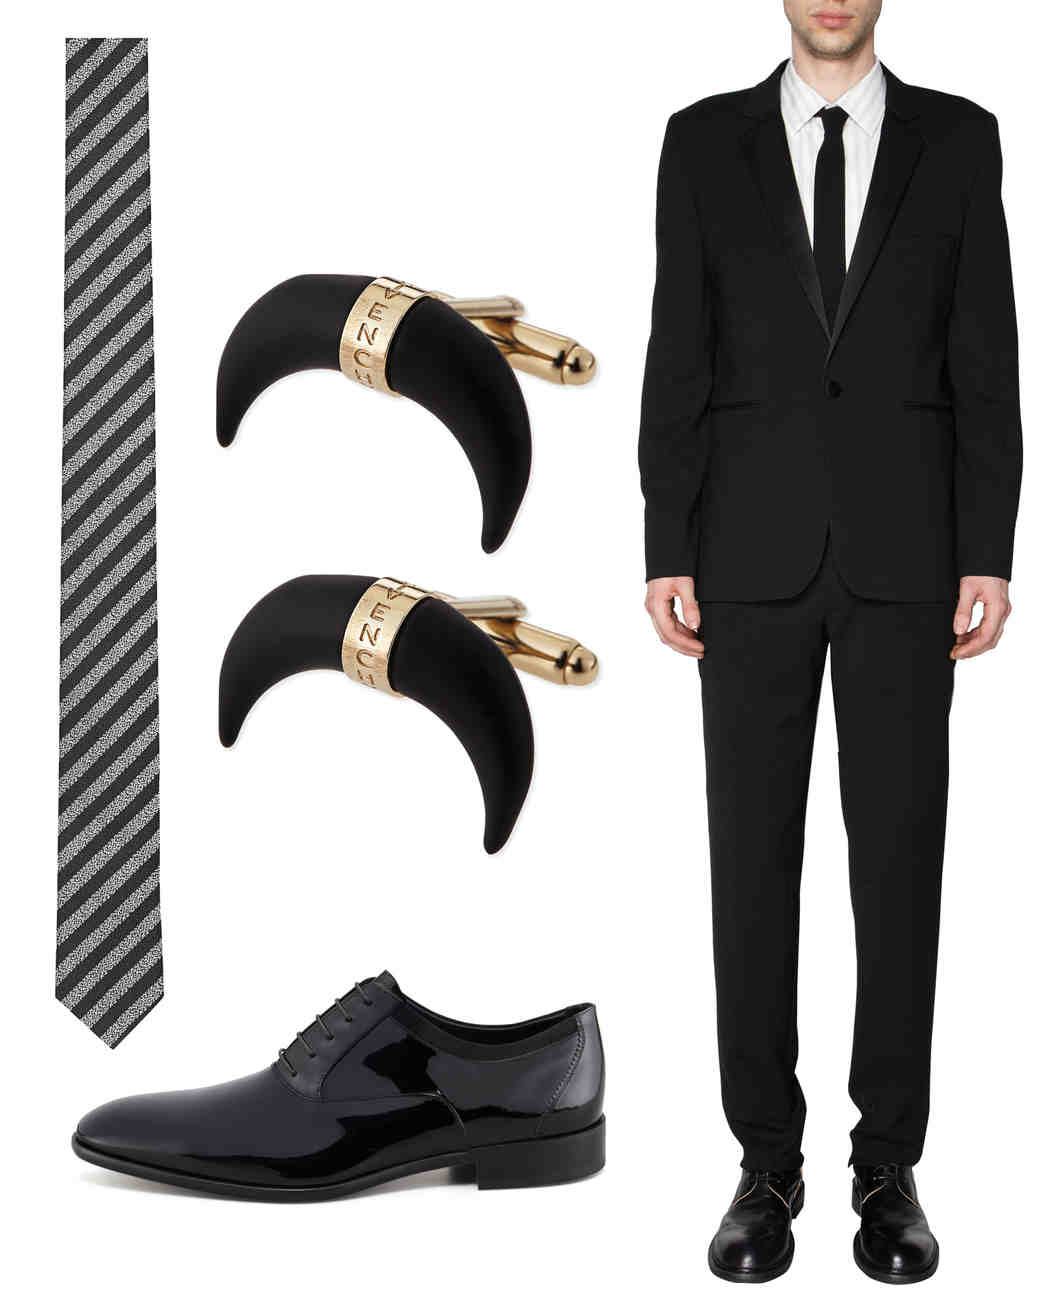 sting-trudie-styler-inspired-wedding-groom-outfit-0814.jpg